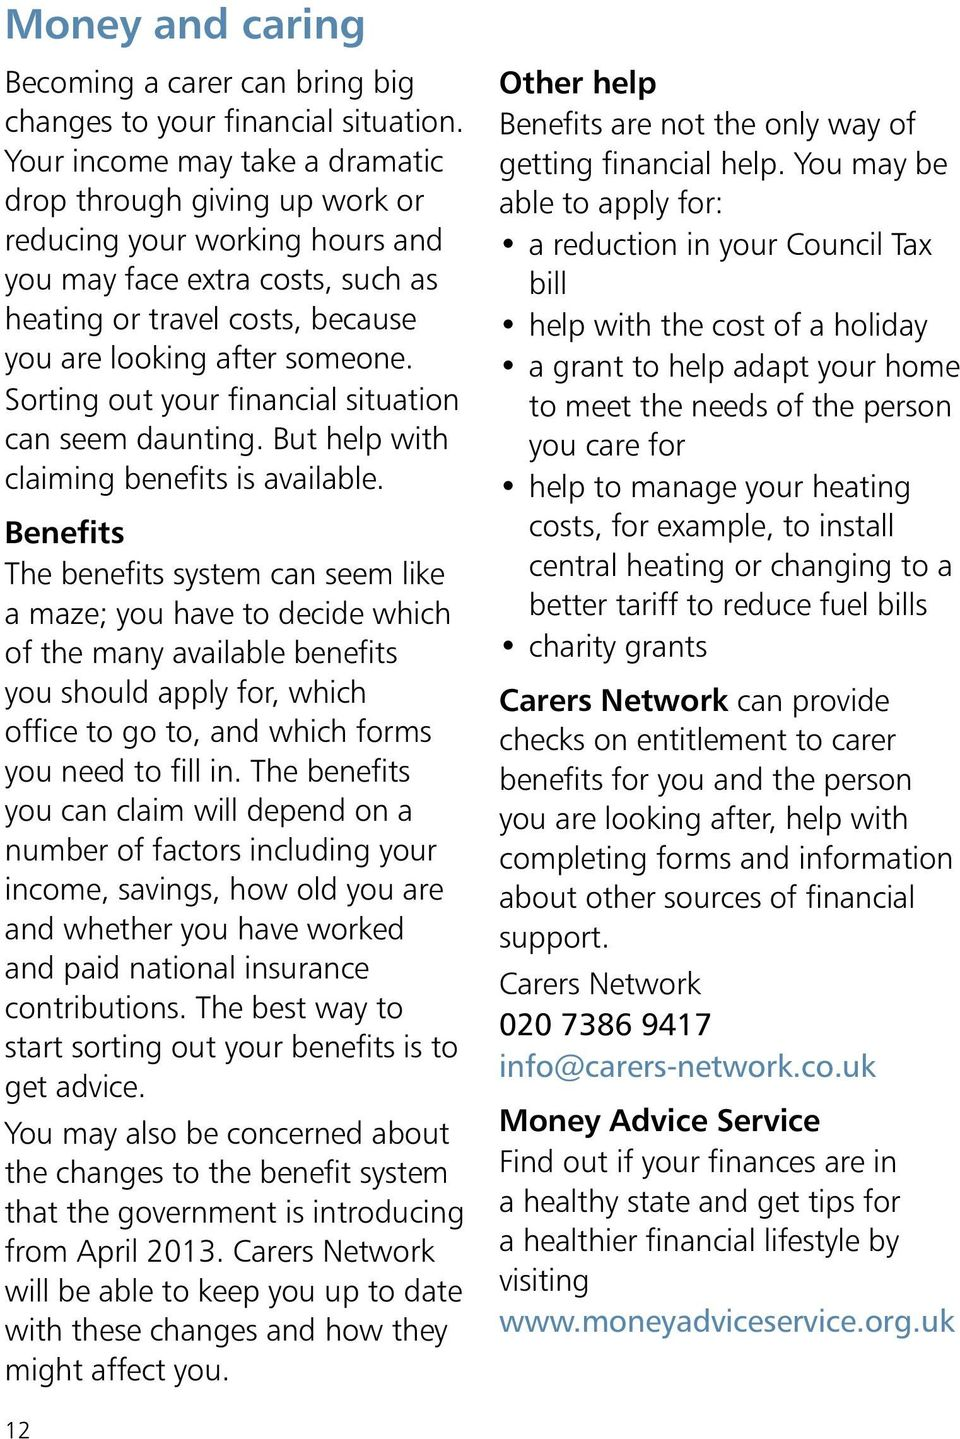 Sorting out your financial situation can seem daunting. But help with claiming benefits is available.